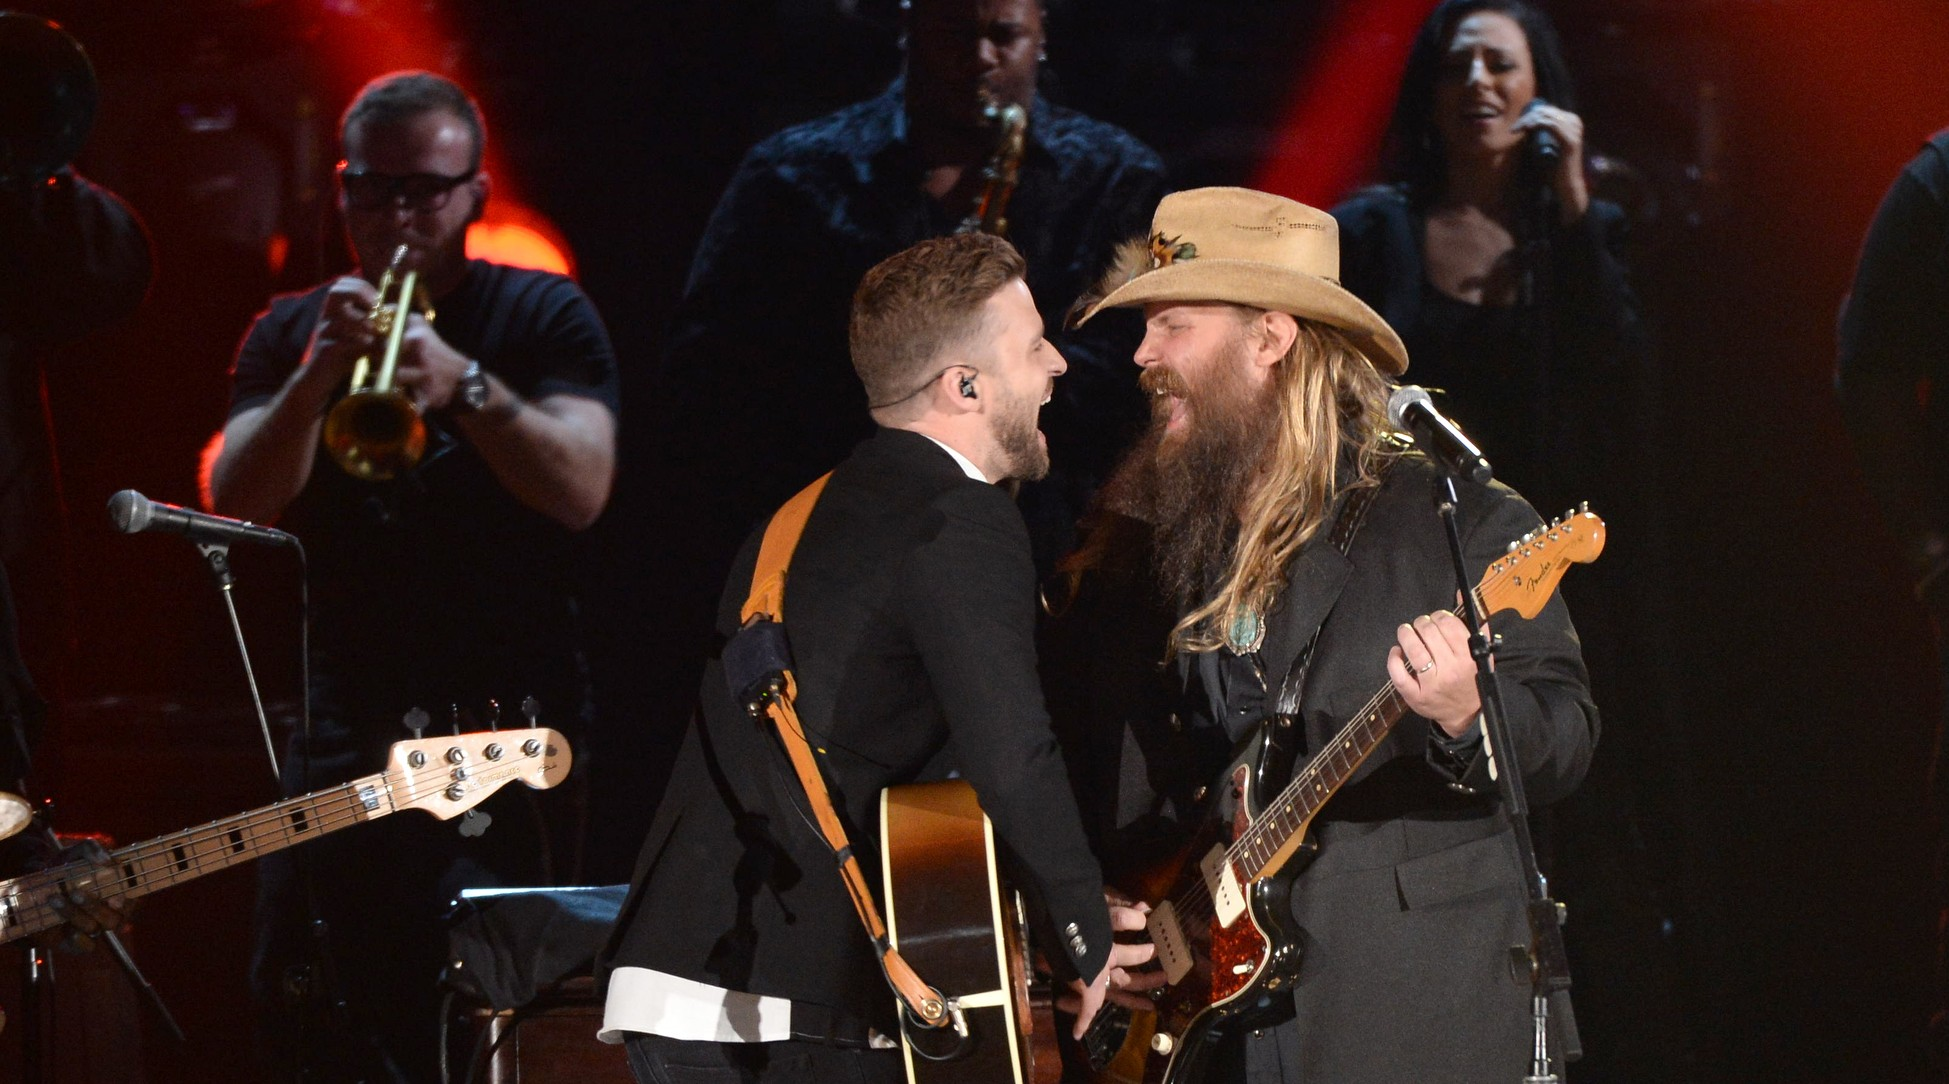 Tennessee whiskey grabs 2 on sales chart after chris for Tennessee whiskey justin timberlake